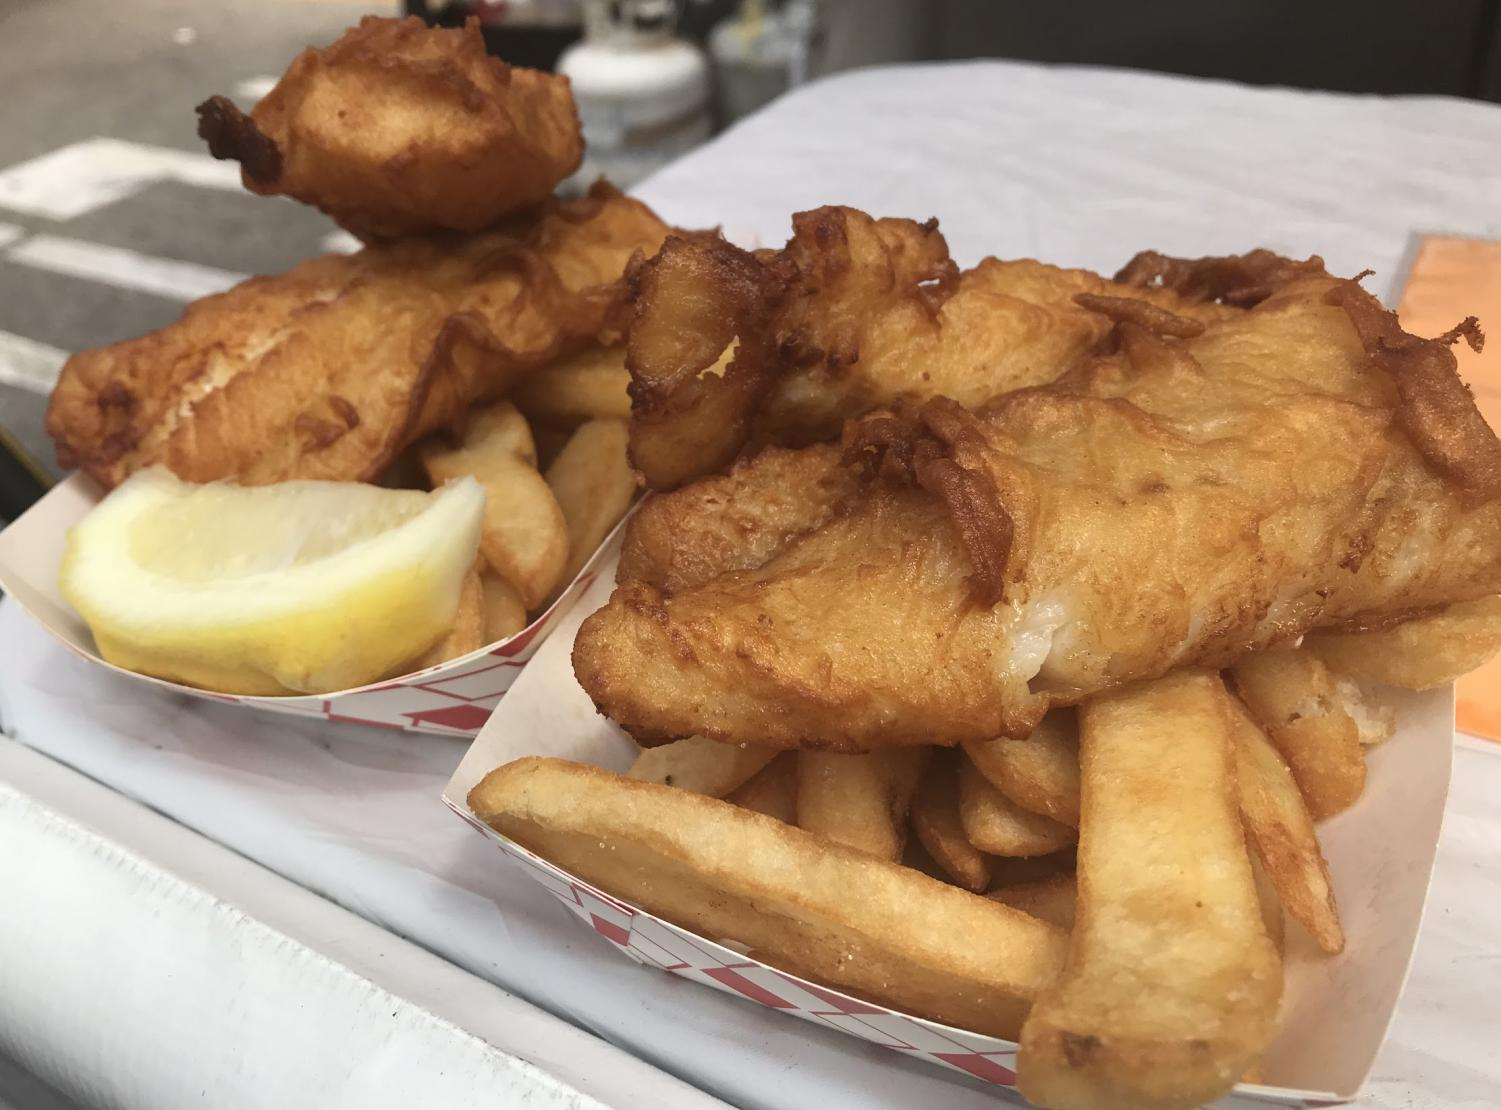 CATCH+OF+THE+DAY%3A+Britain%E2%80%99s+fish+and+chips+is+senior+Charlene+Pham%E2%80%99s+favorite+dish+at+the+event.%0A%E2%80%9CI+felt+a+great+appreciation+for+the+diversity+and+culture+included+in+the+Orange+International+Street+Fair.+Seeing+all+the+roads+of+cultural+foods+made+me+proud+to+be+a+citizen+of+Orange+County%2C%E2%80%9D+Pham+said.+